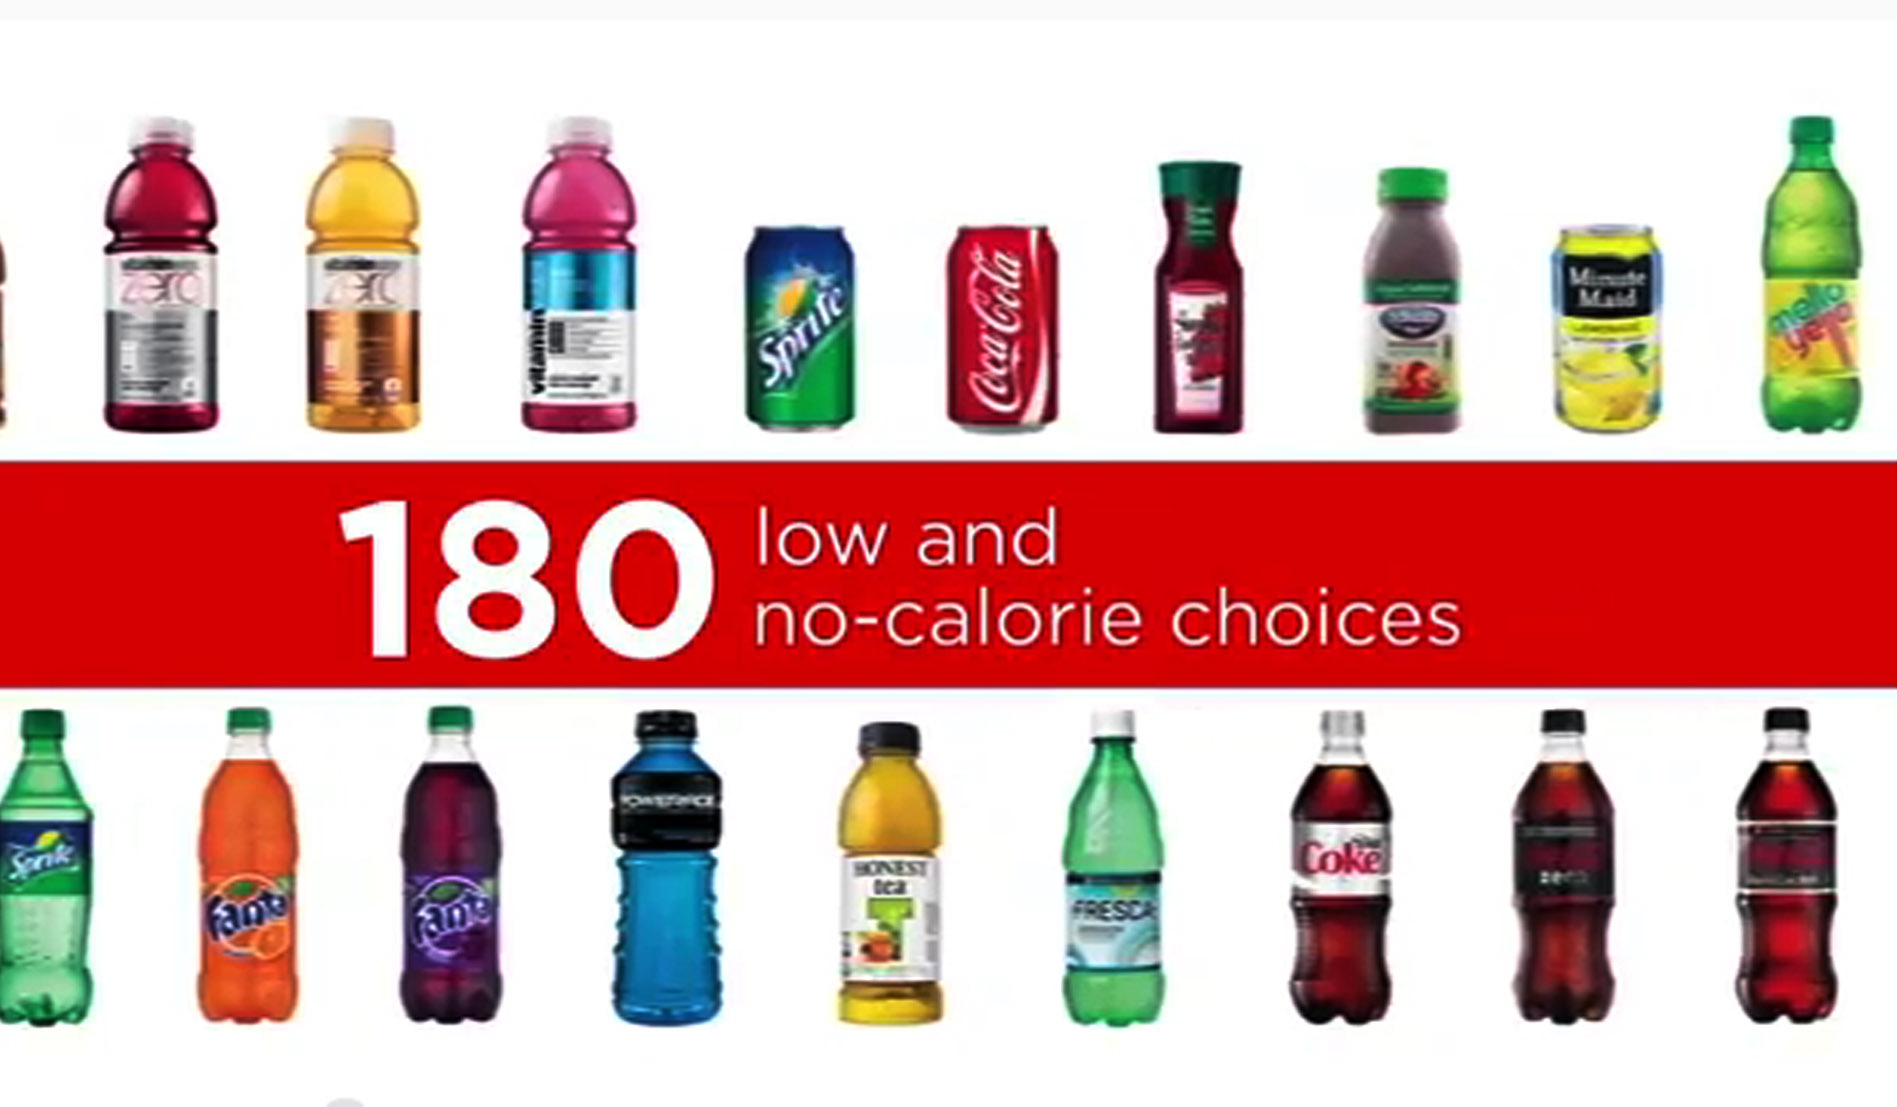 coca cola brand audit Coca-cola company history, swot analysis, maketing strategies - carol nganga - term paper - business economics - economic and social history - publish your bachelor's or master's thesis, dissertation, term paper or essay.